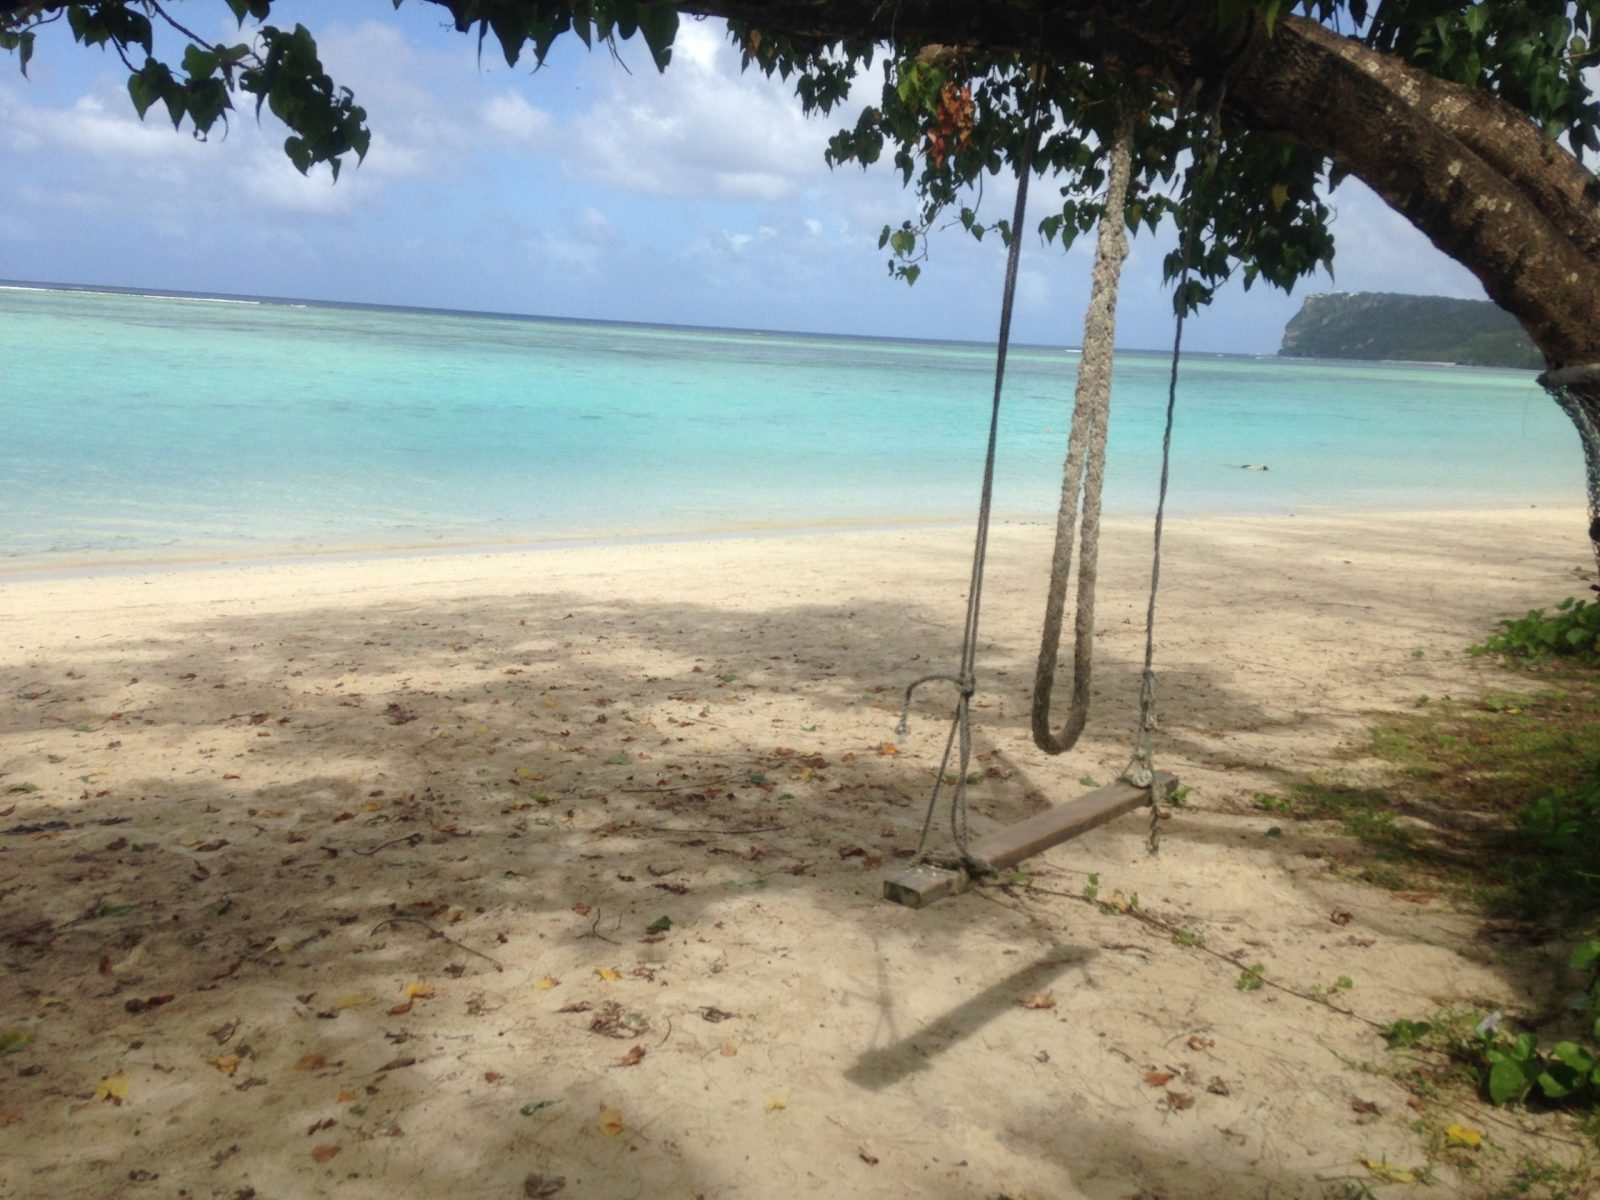 A rope swing in front of blue ocean water at the beach in Guam